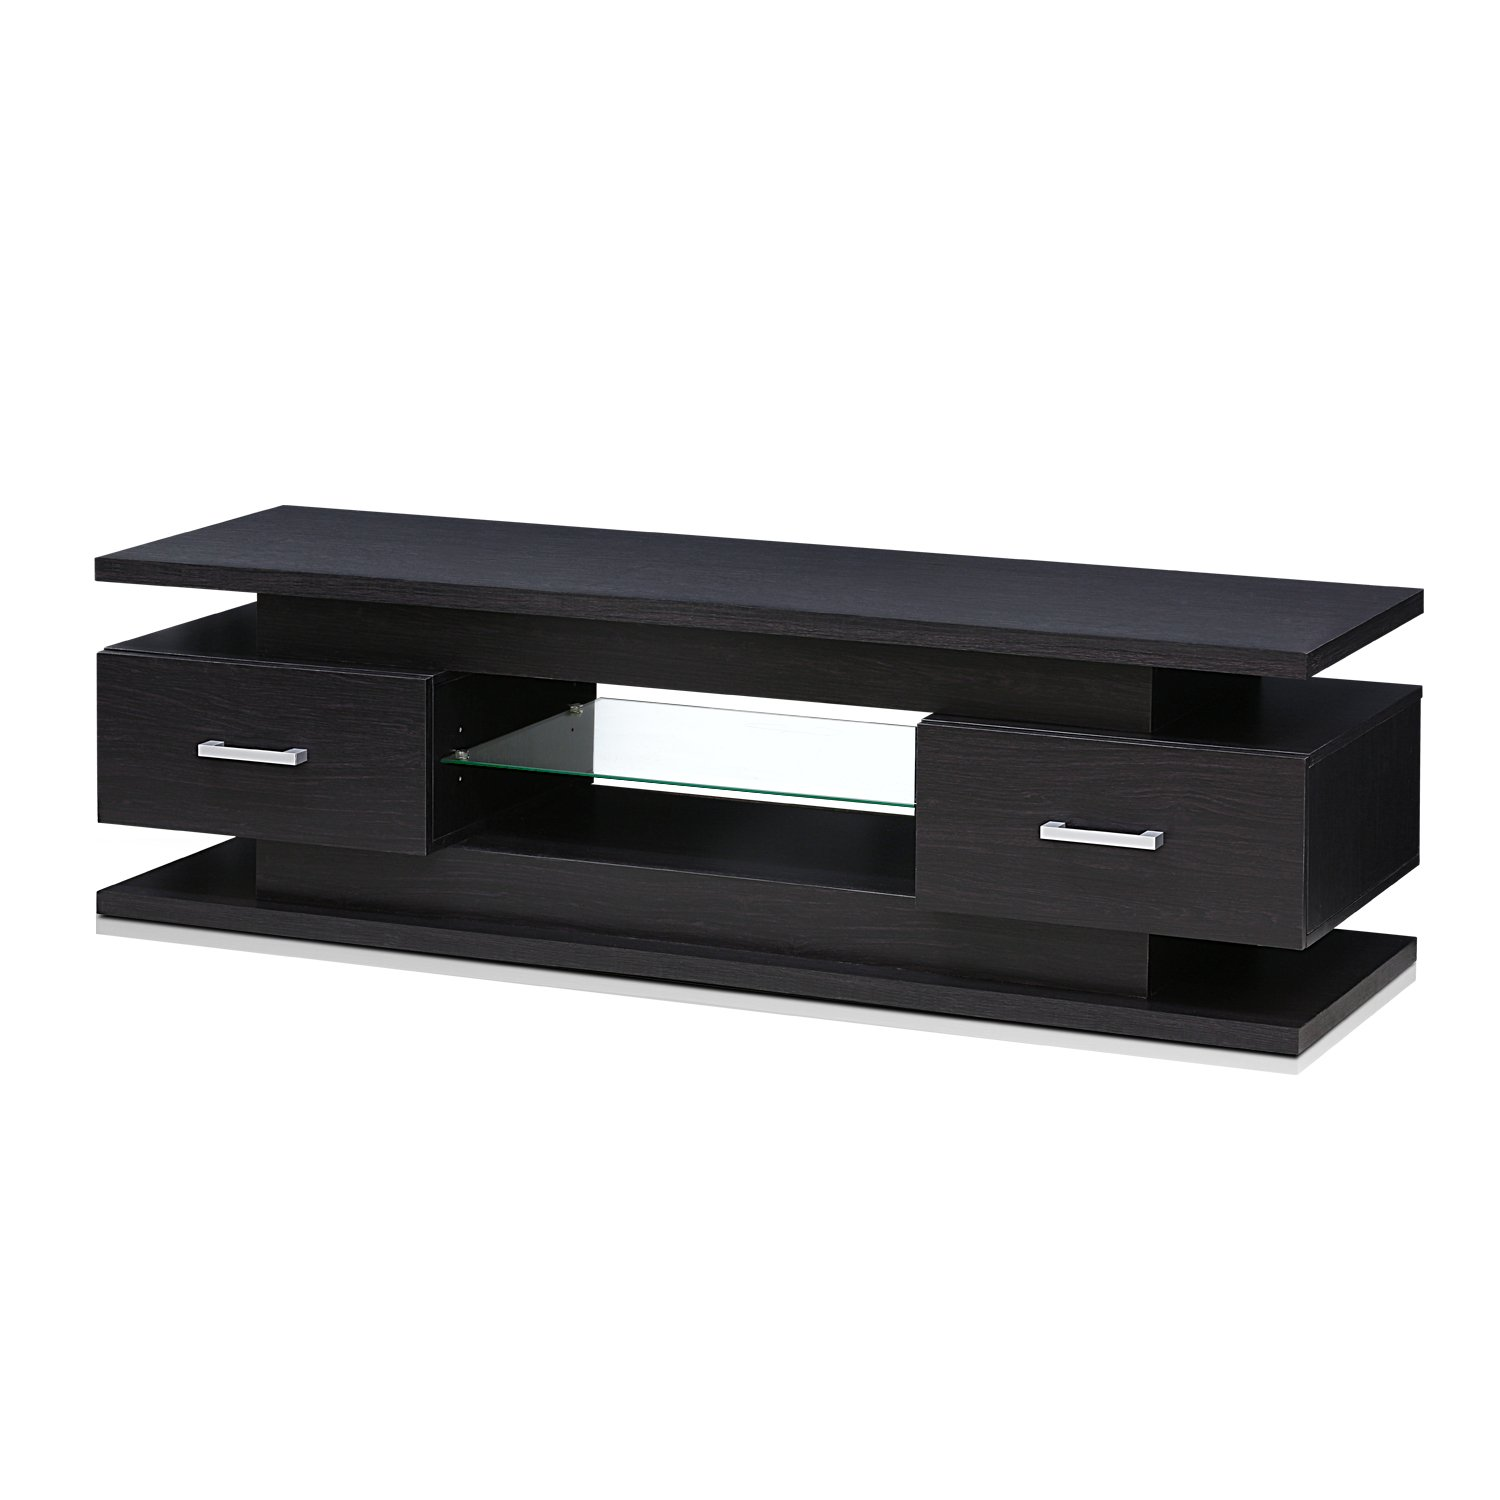 FURINNO FVR7231WG Indo Entertainment Center for TV up to 65 Inch with 2 Drawers and Glass Shelf, Wenge